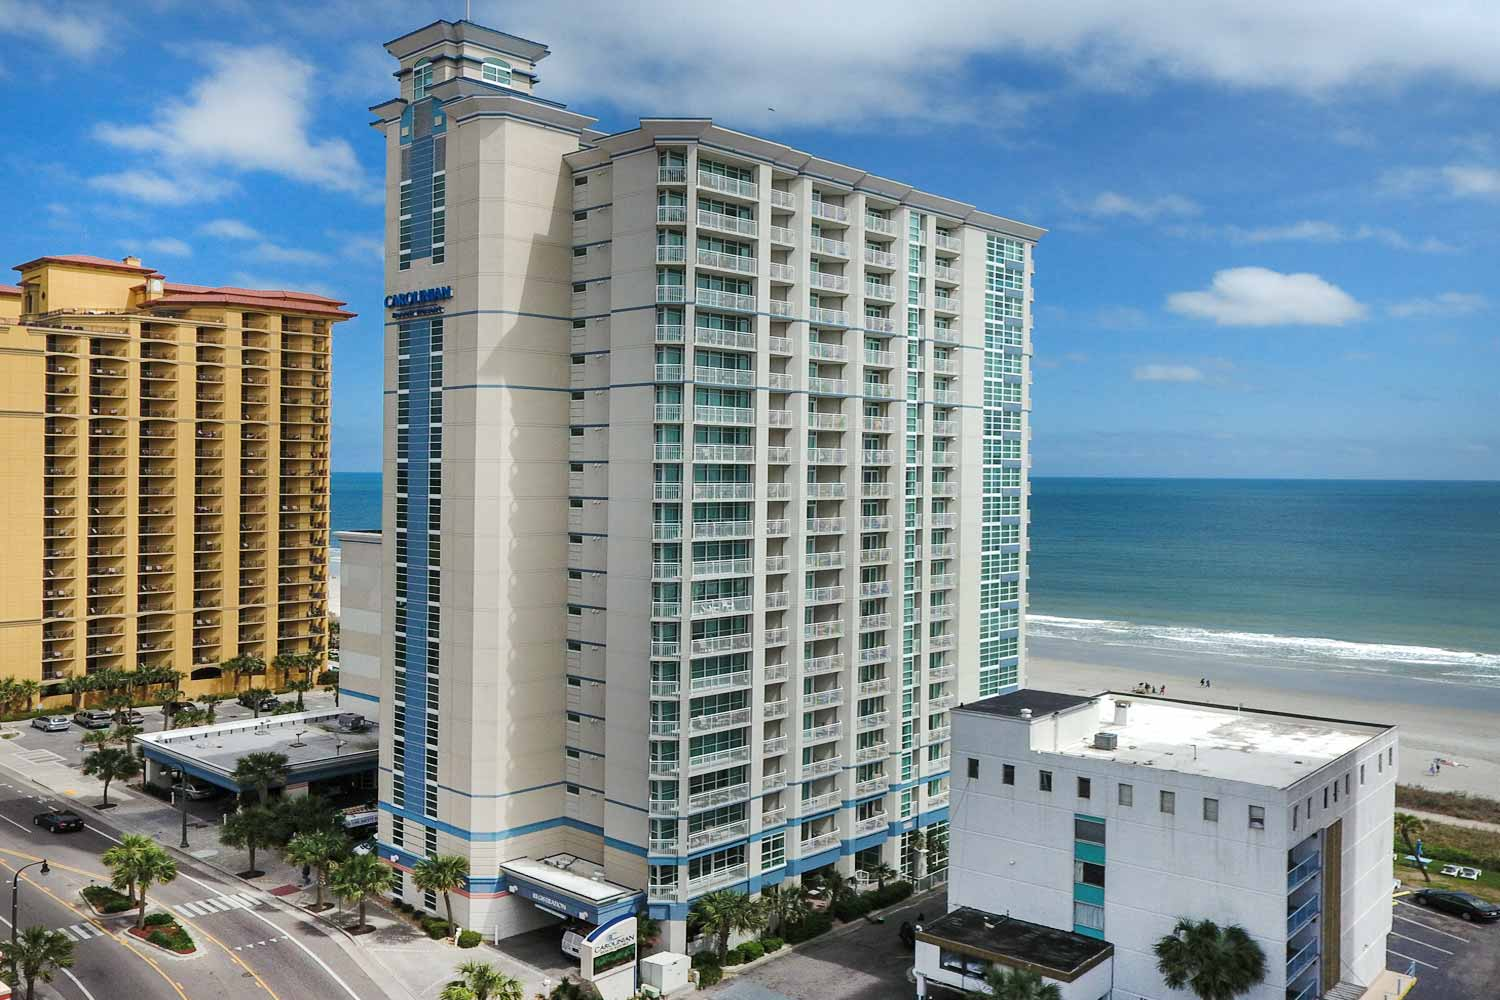 Myrtle Beach Resorts  Best Oceanfront Resorts in Myrtle